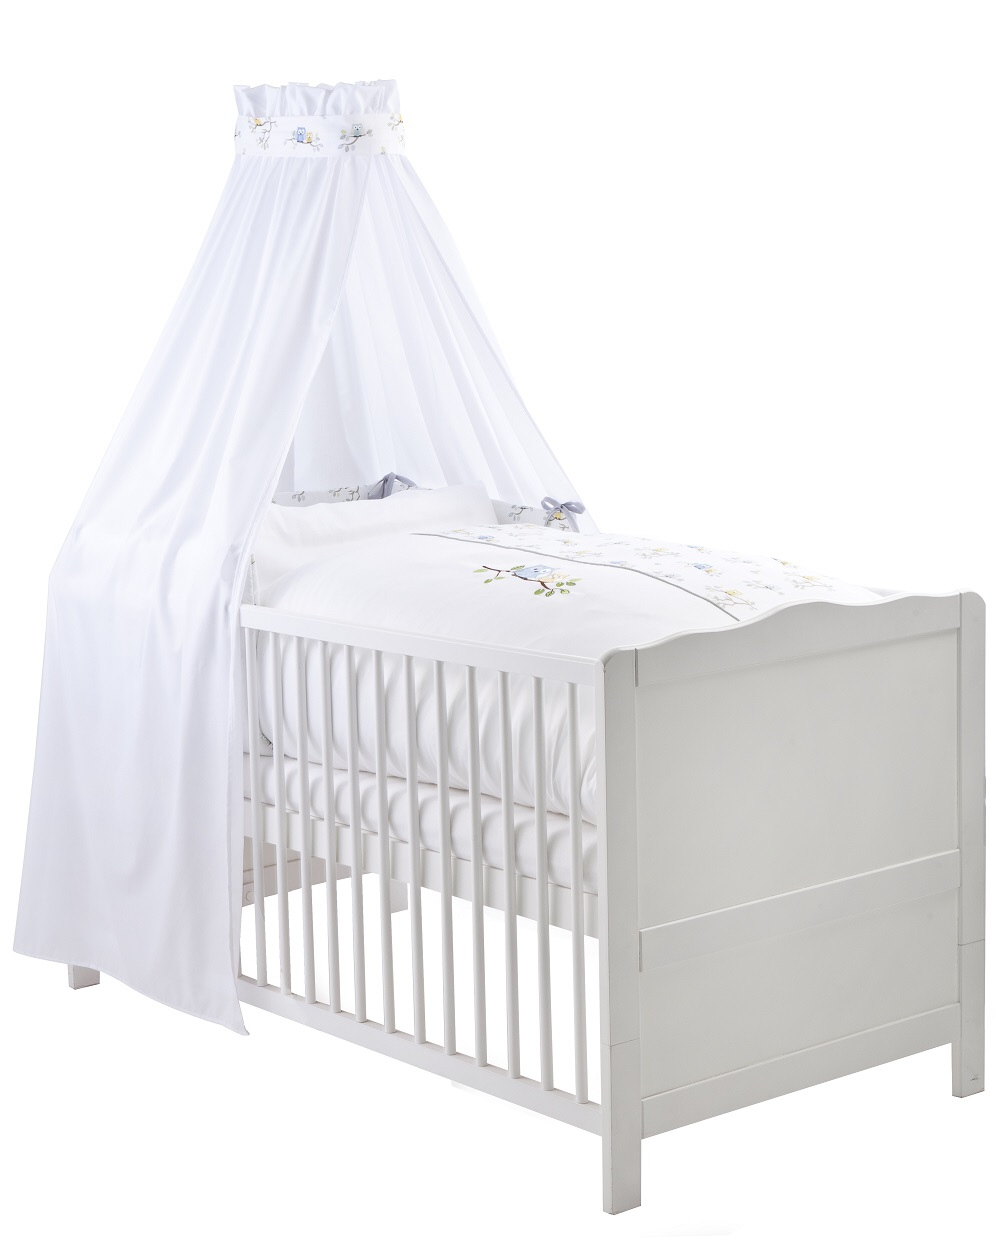 ensemble voile et linges de lit petites chouettes blanc par z llner 2015 acheter sur. Black Bedroom Furniture Sets. Home Design Ideas